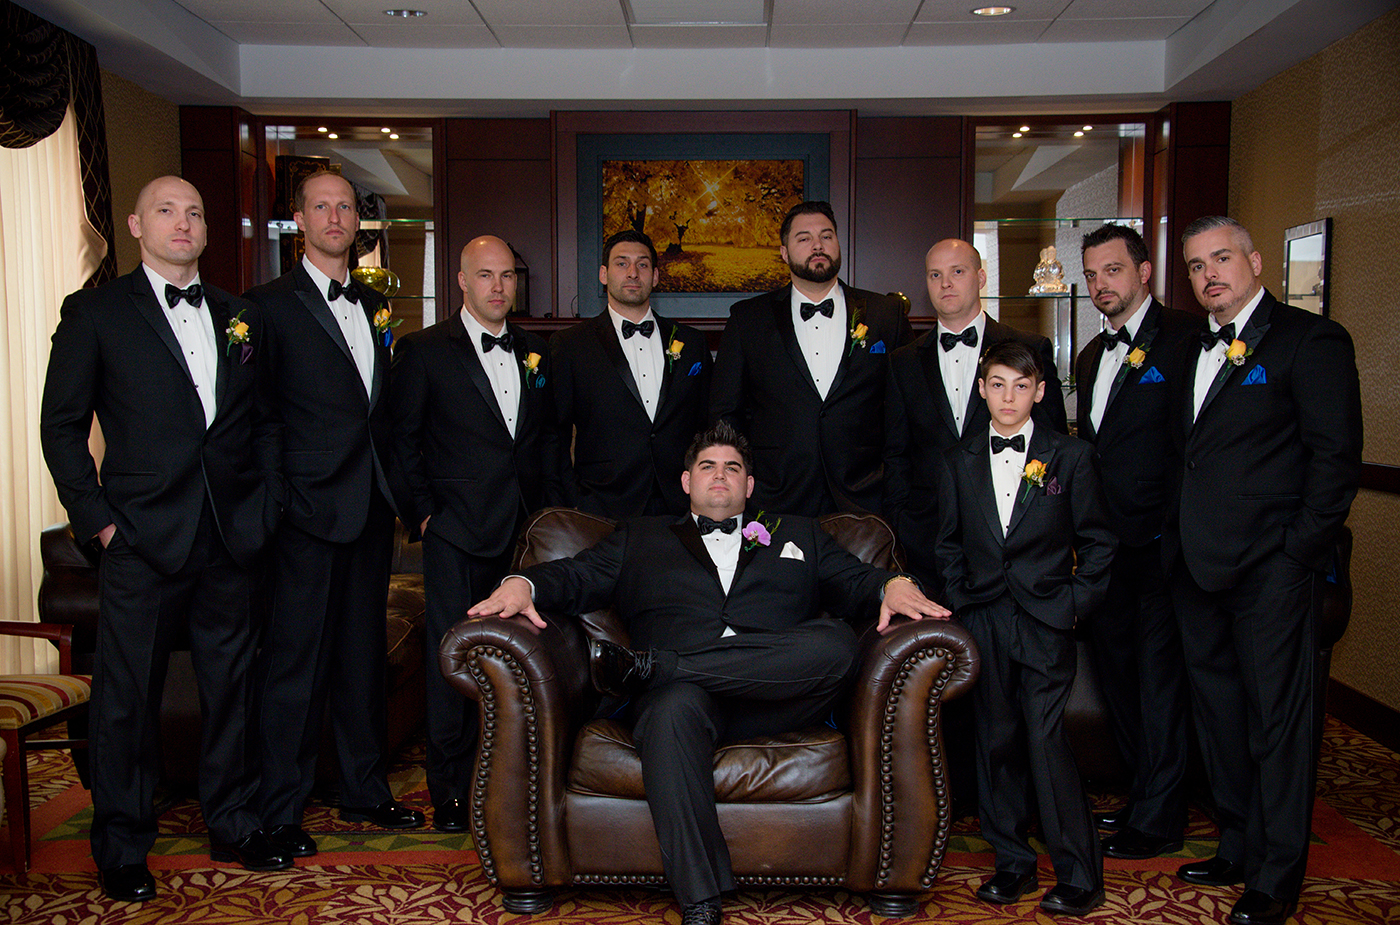 All Occasions Photography Albany NY - Wedding Photography Groom With Groomsmen